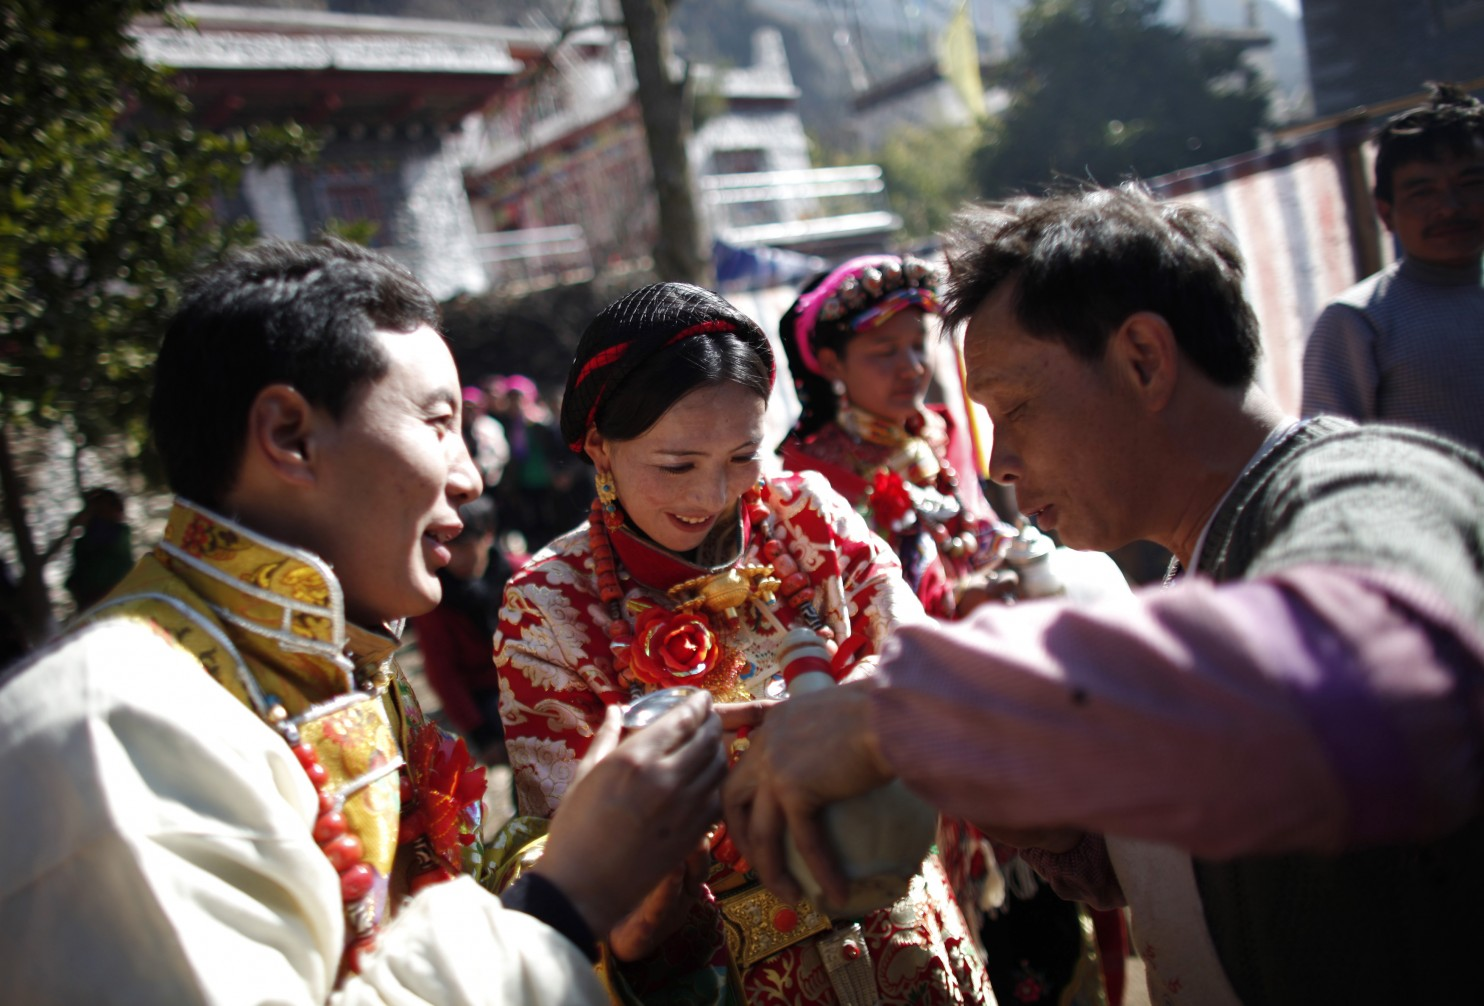 China promotes mixed marriages in Tibet as way to achieve 'unity'